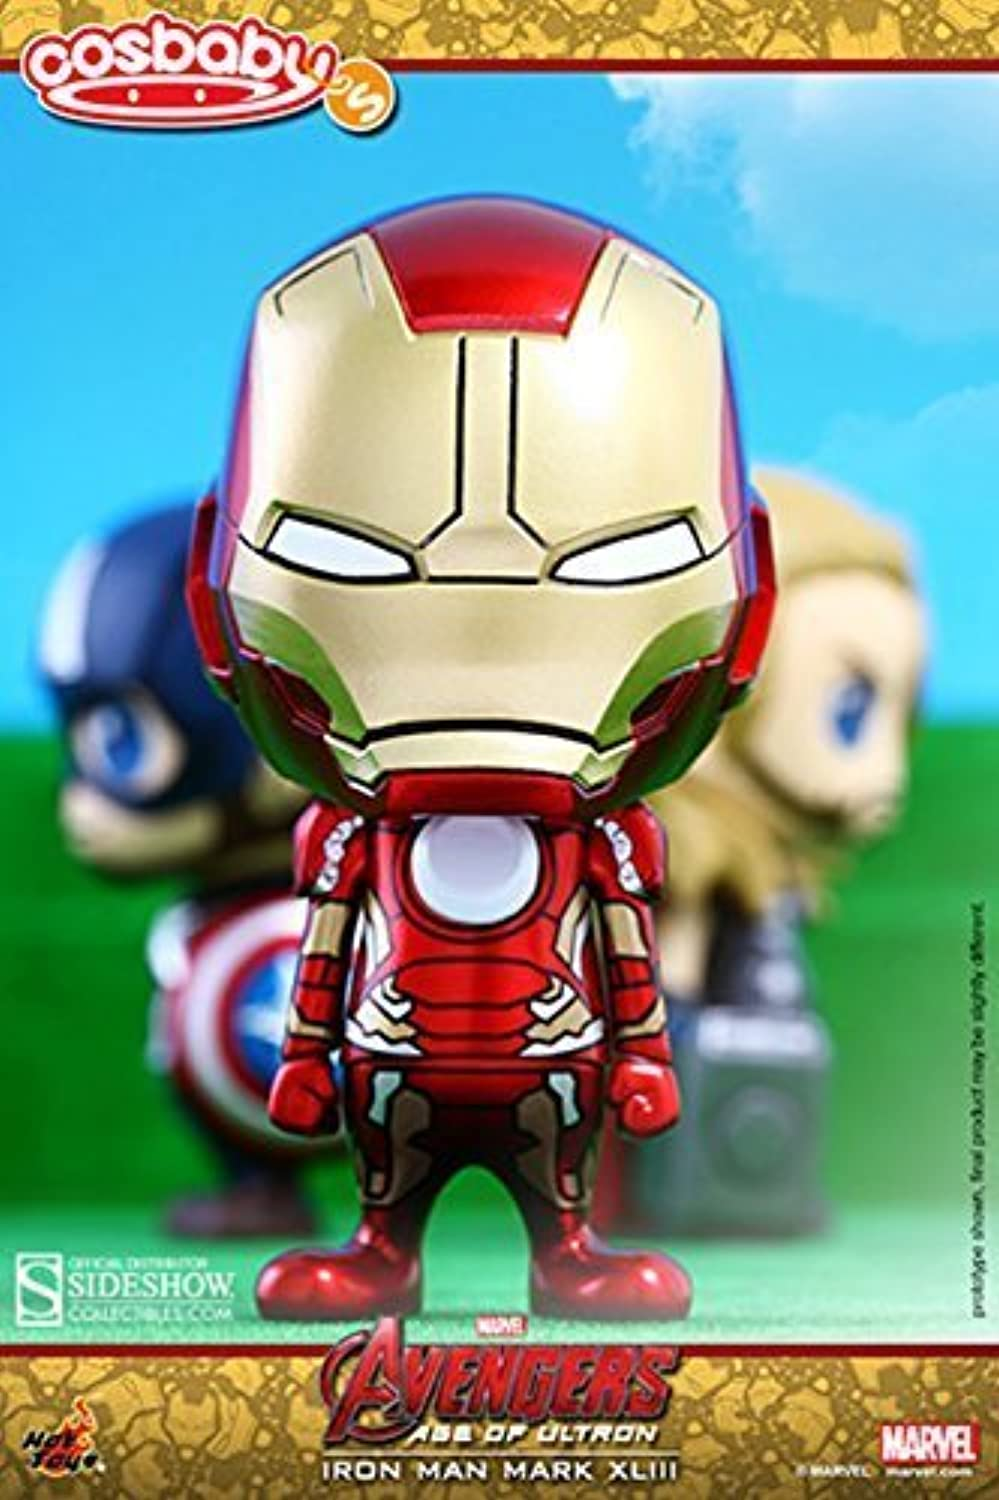 Hot Toys Avengers 2  Age of Ultron Cosbaby Series 1Iron Man Mark XLIII COSB171 by Hot Toys